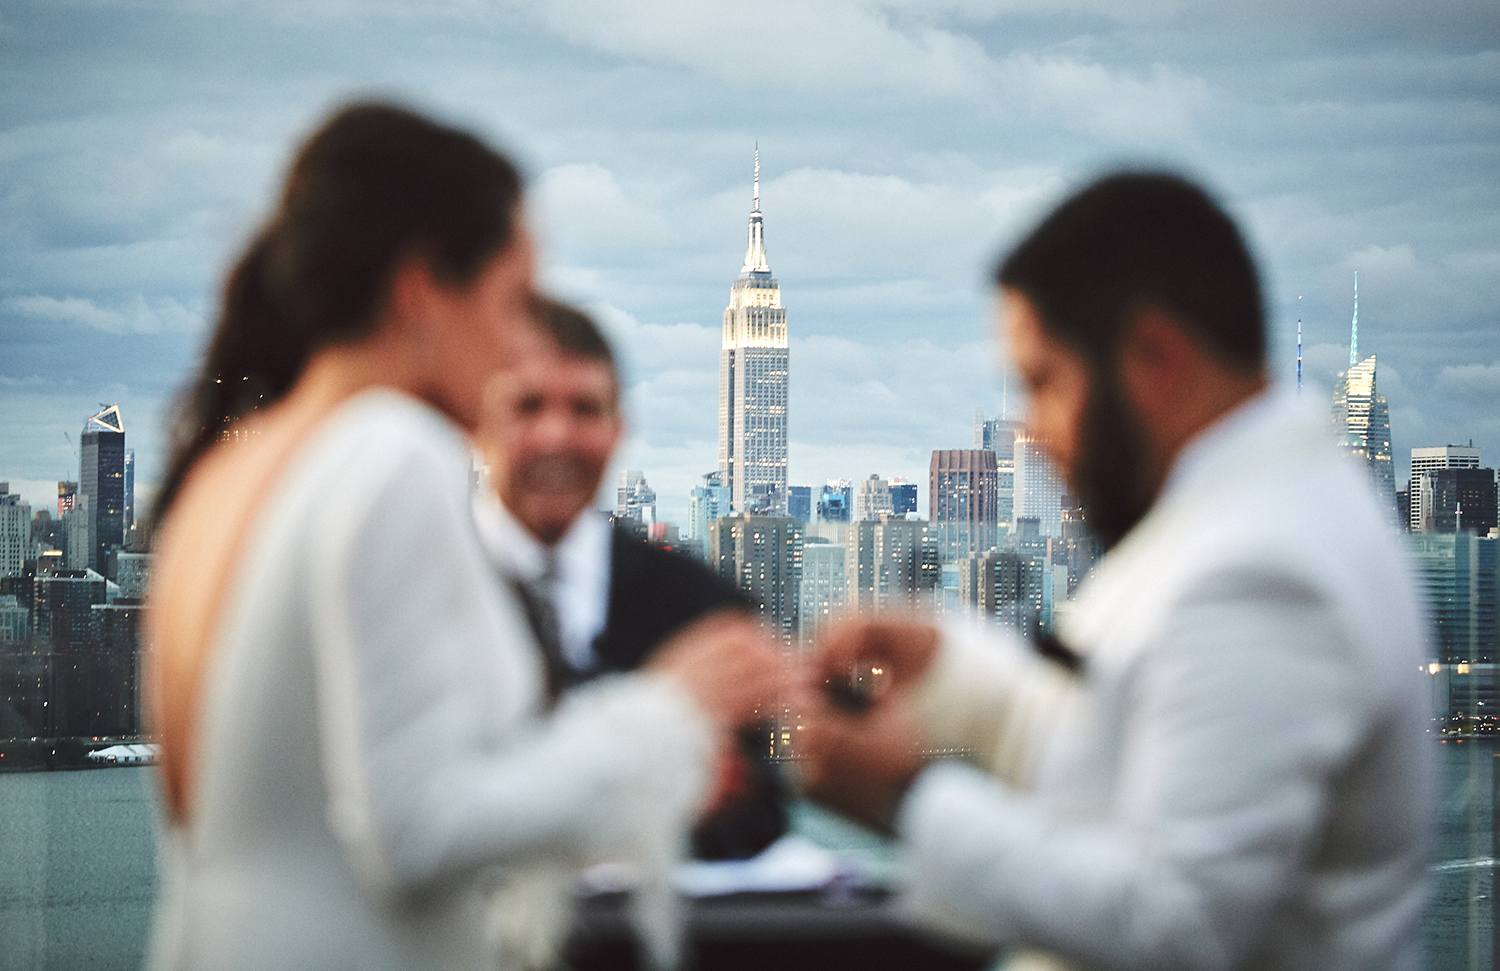 170930_WilliamValeWeddingPhotography_BrooklynWeddingPhotographer_By_BriJohnsonWeddings_0126.jpg